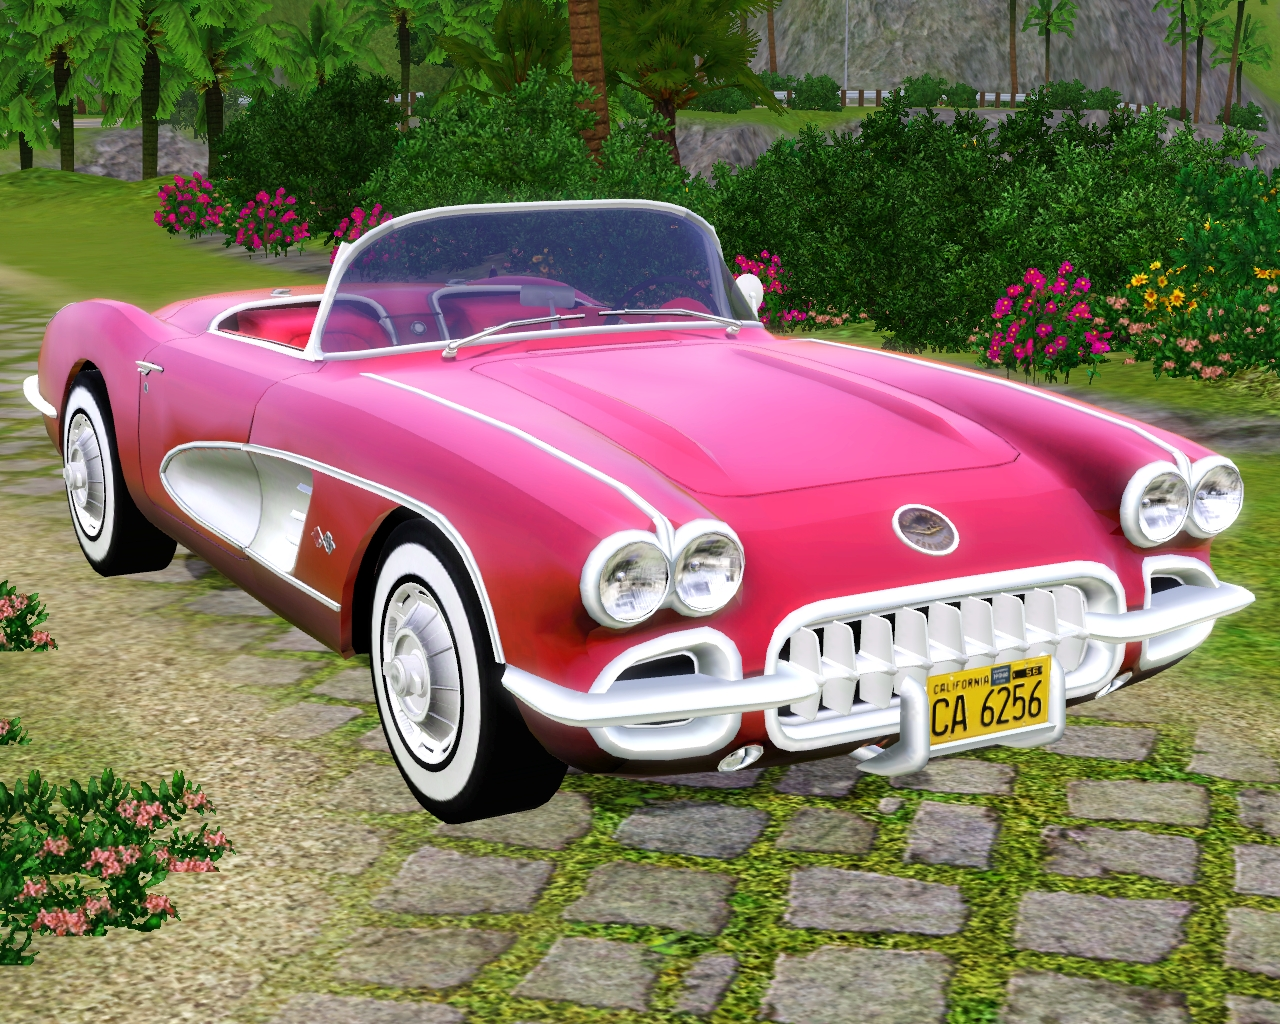 1960 Chevrolet Corvette by Fresh-Prince